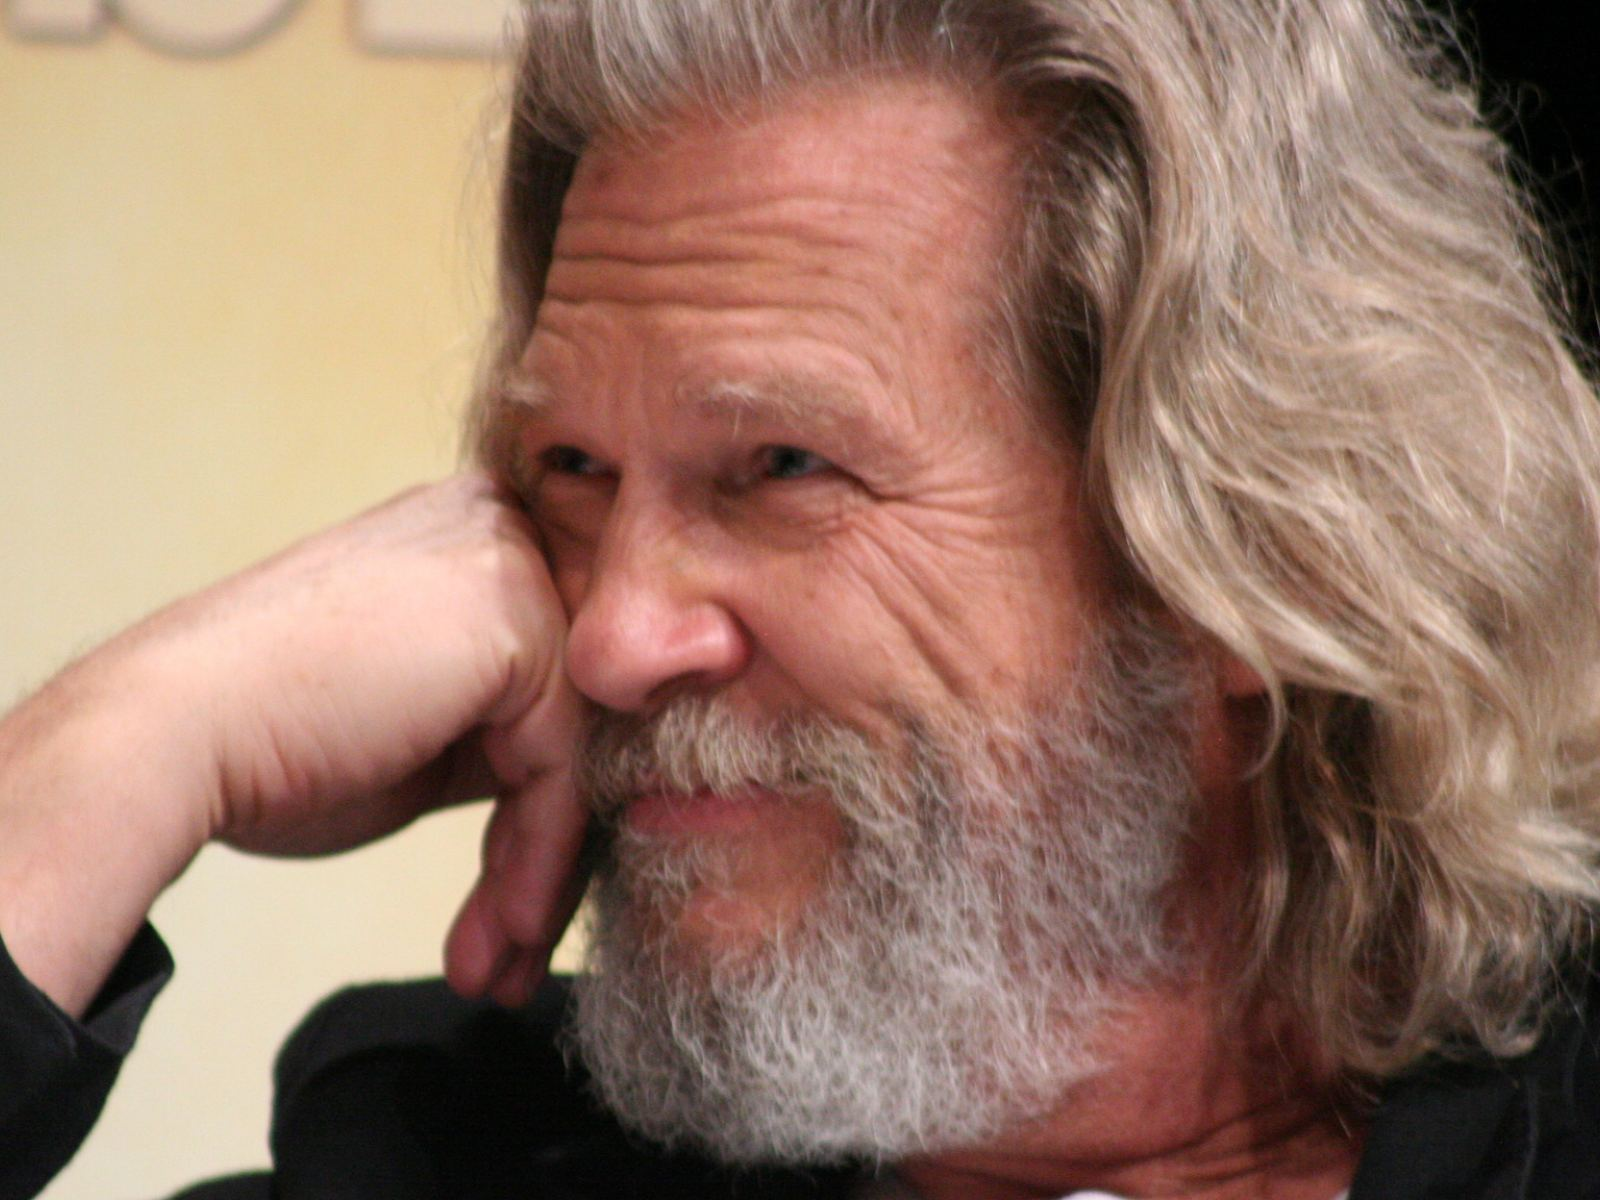 Main image for event titled Lebowski Fest - Jeff Bridges Live In Concert